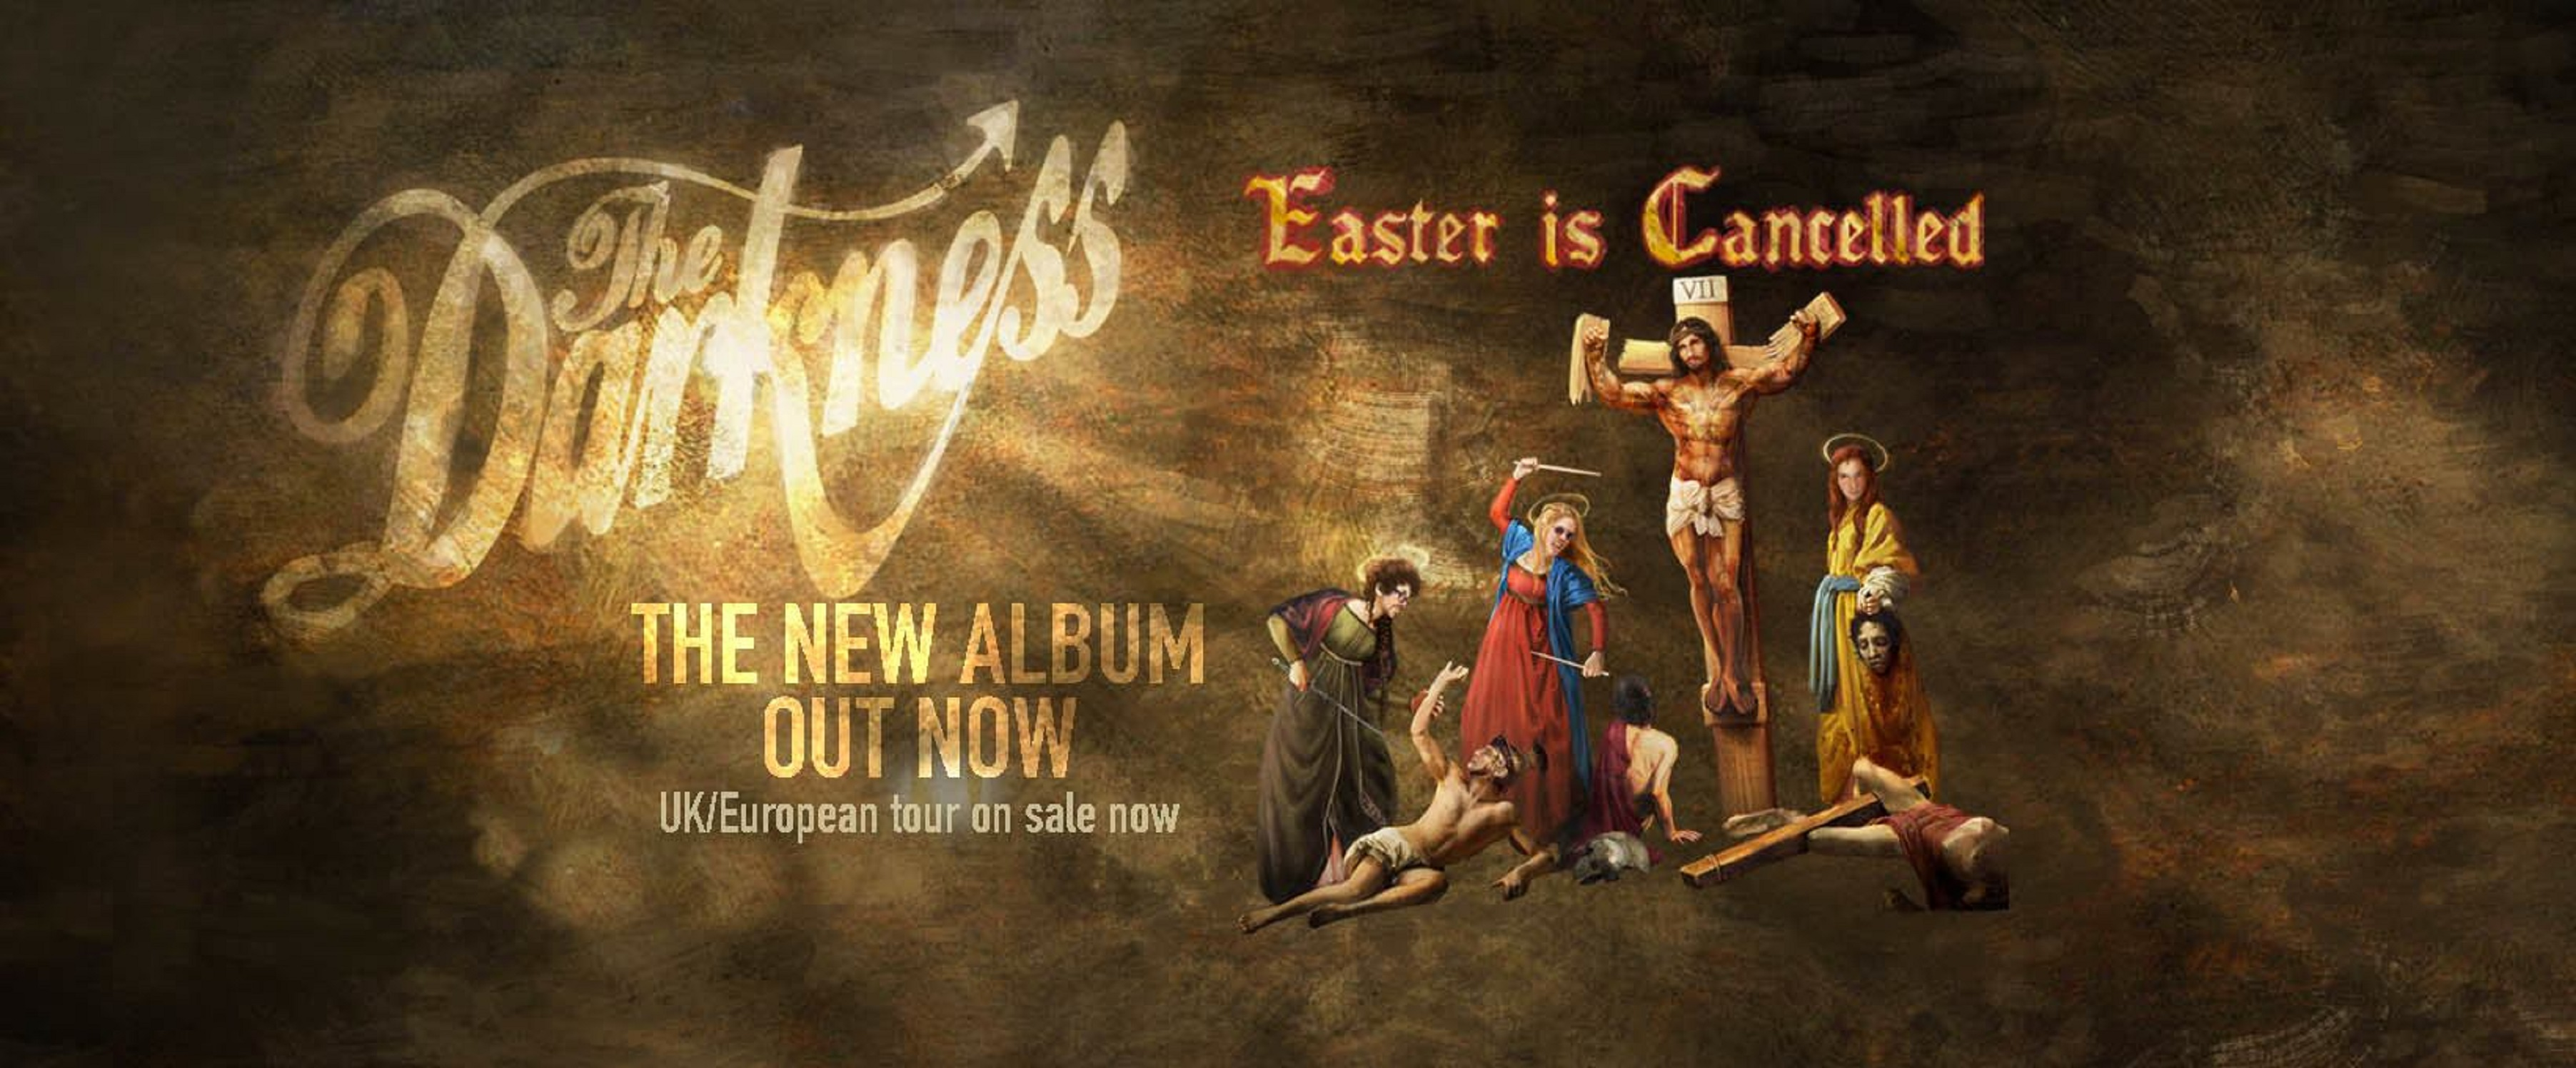 THE DARKNESS Kicks Off North American Leg of Easter Is Cancelled Tour on April 13th